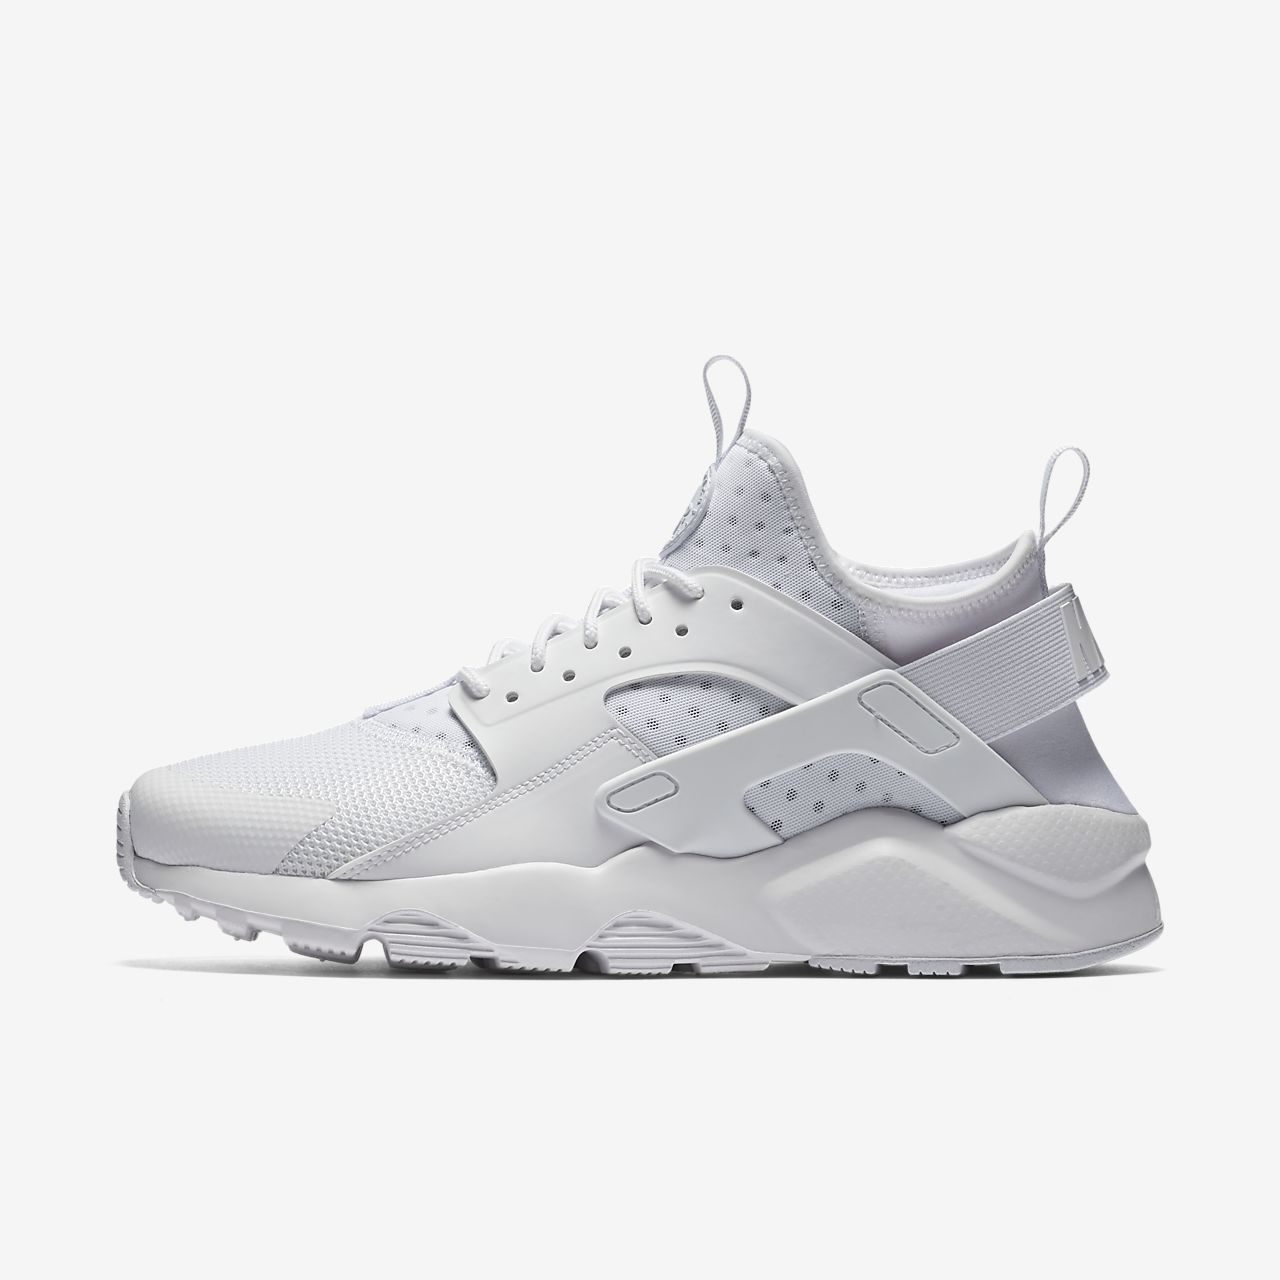 9e4a7d55e2ce Nike Air Huarache Ultra Men s Shoe. Nike.com AU